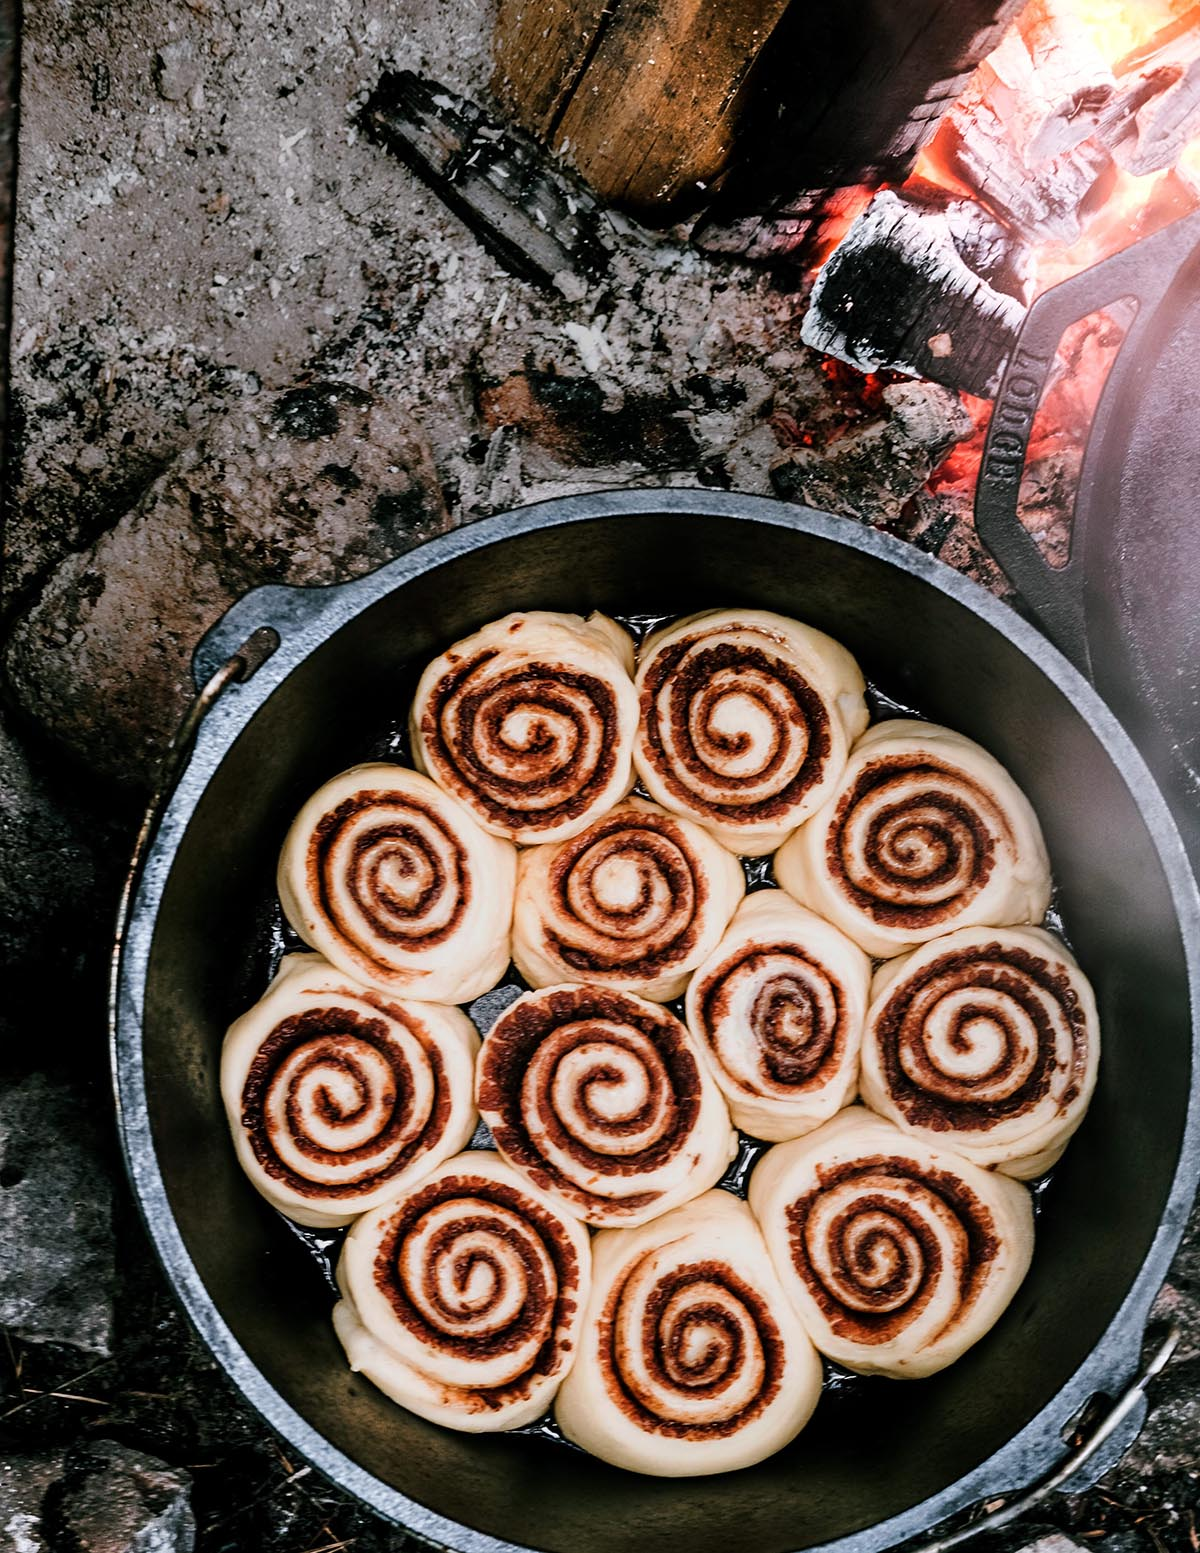 Cinnamon rolls in a Dutch oven next to a campfire